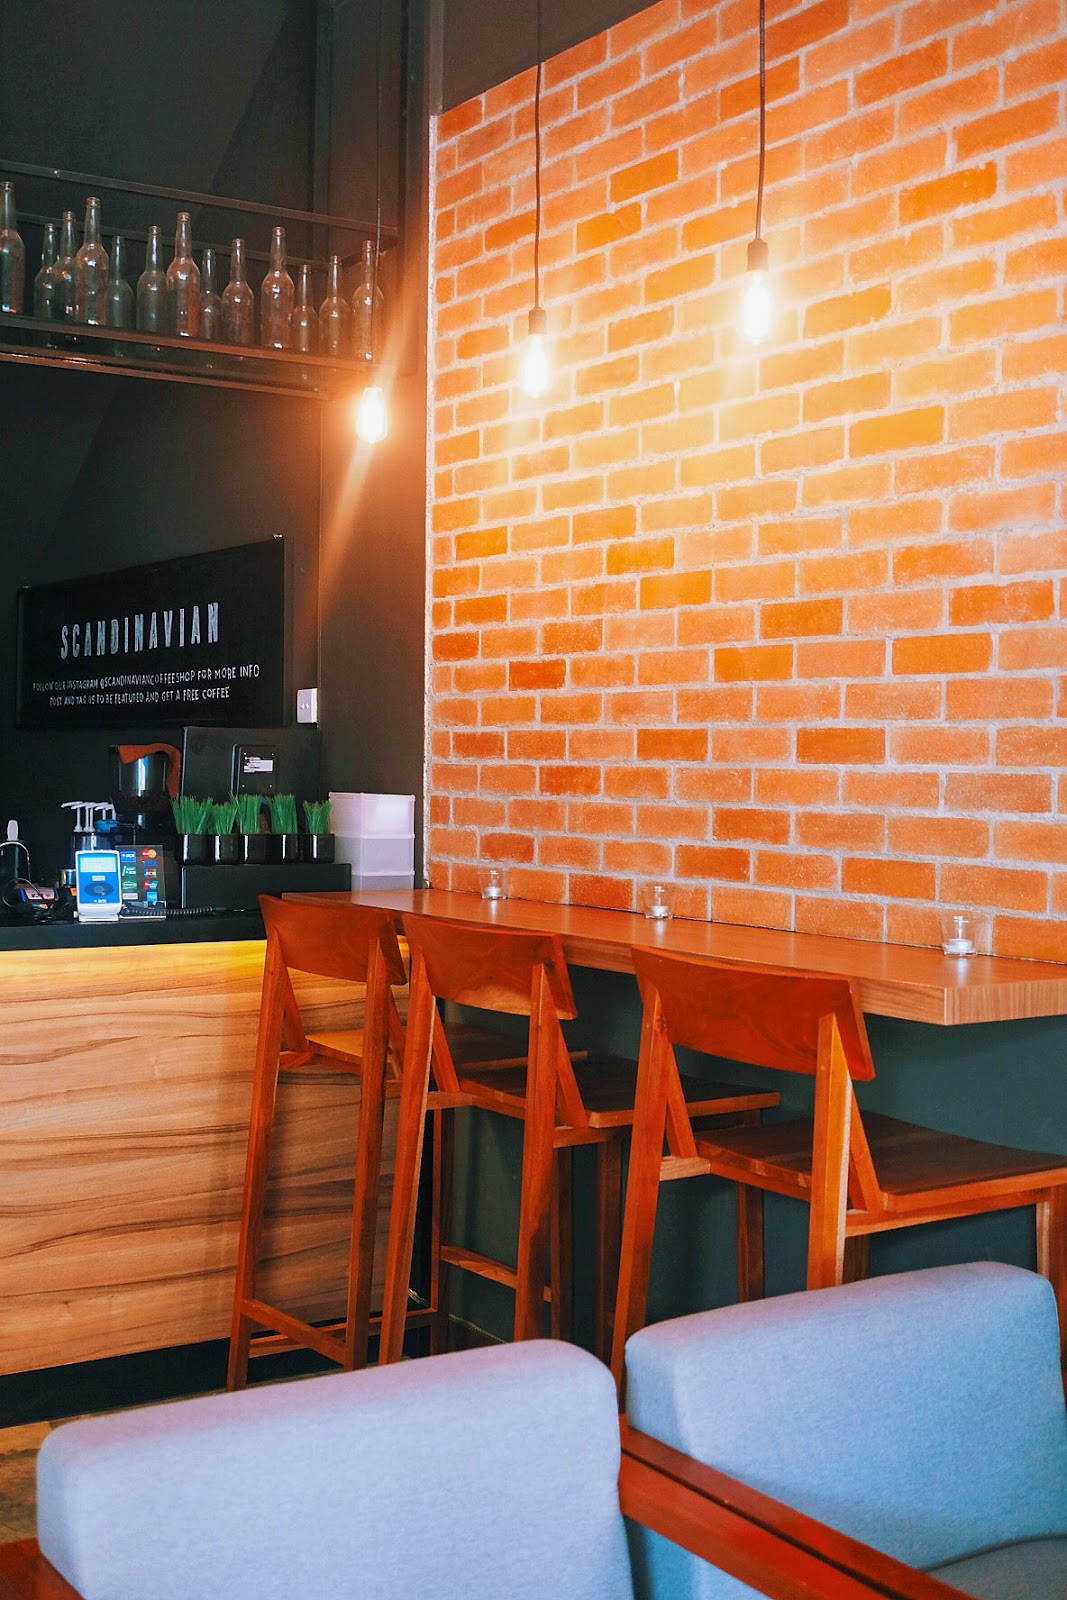 Ivy S Life Scandinavian Coffee Shop Gading Serpong